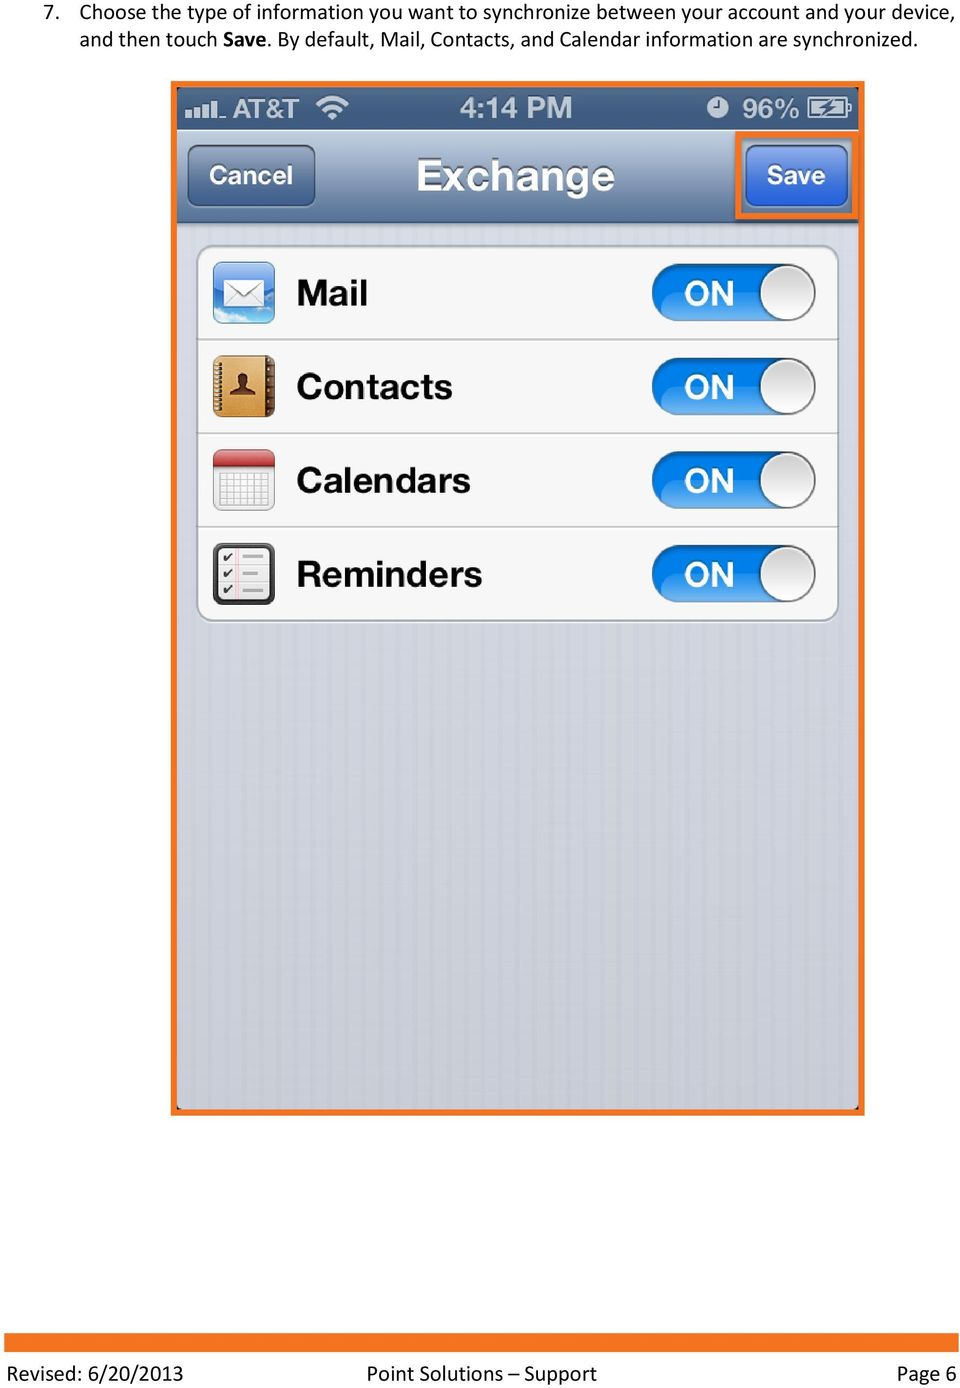 By default, Mail, Contacts, and Calendar information are